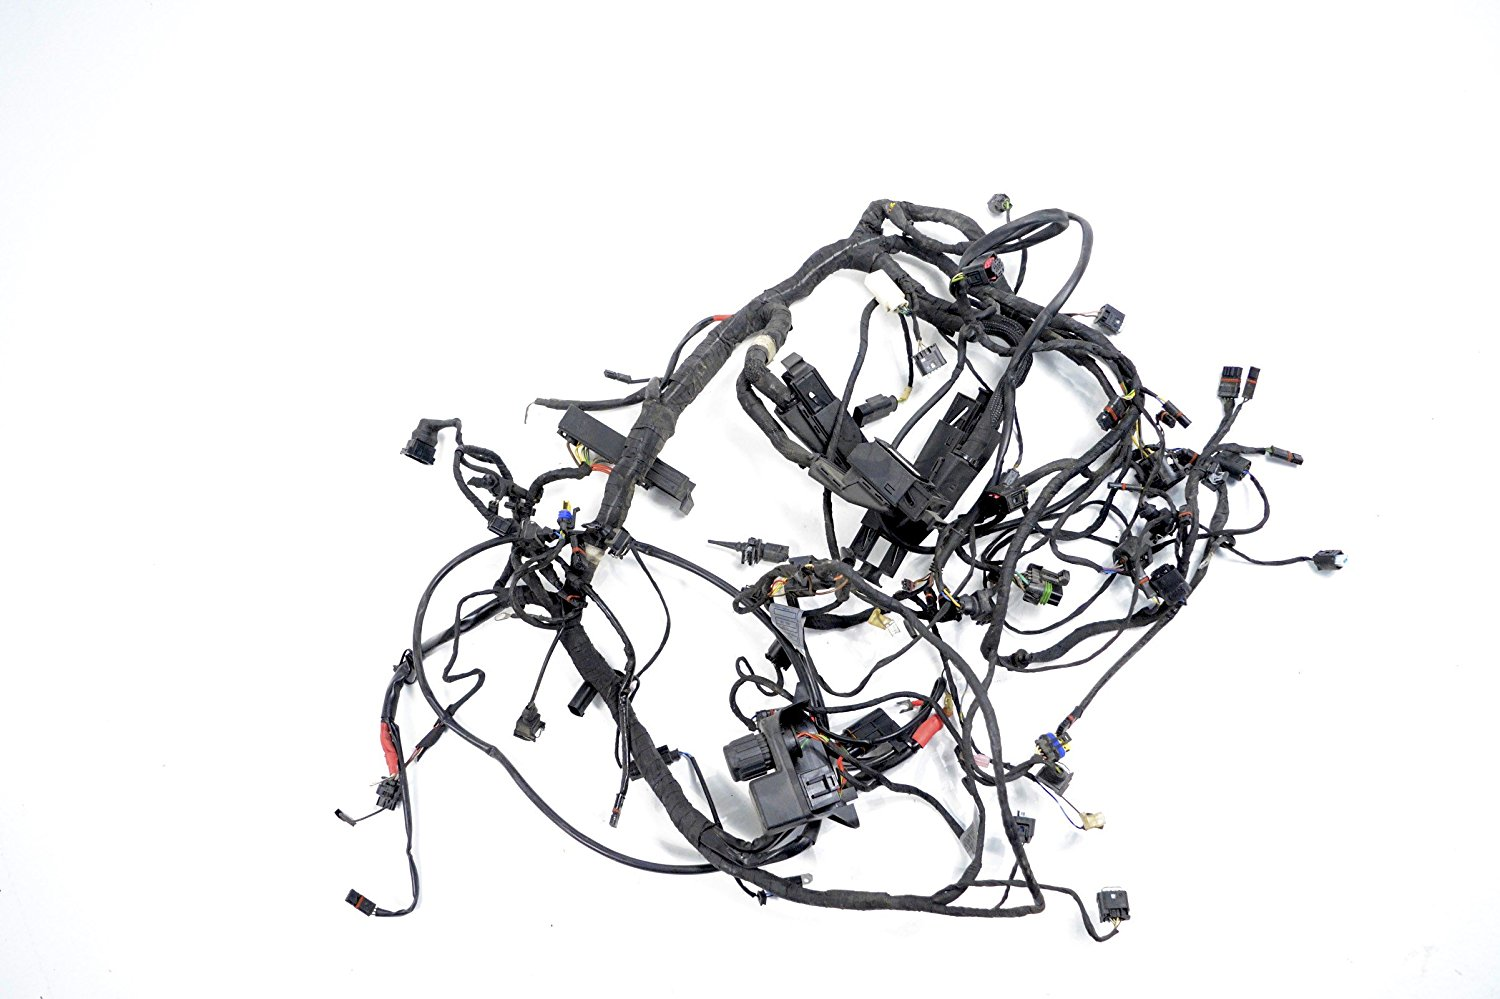 Cheap Chassis Wiring Find Chassis Wiring Deals On Line At Alibaba Com